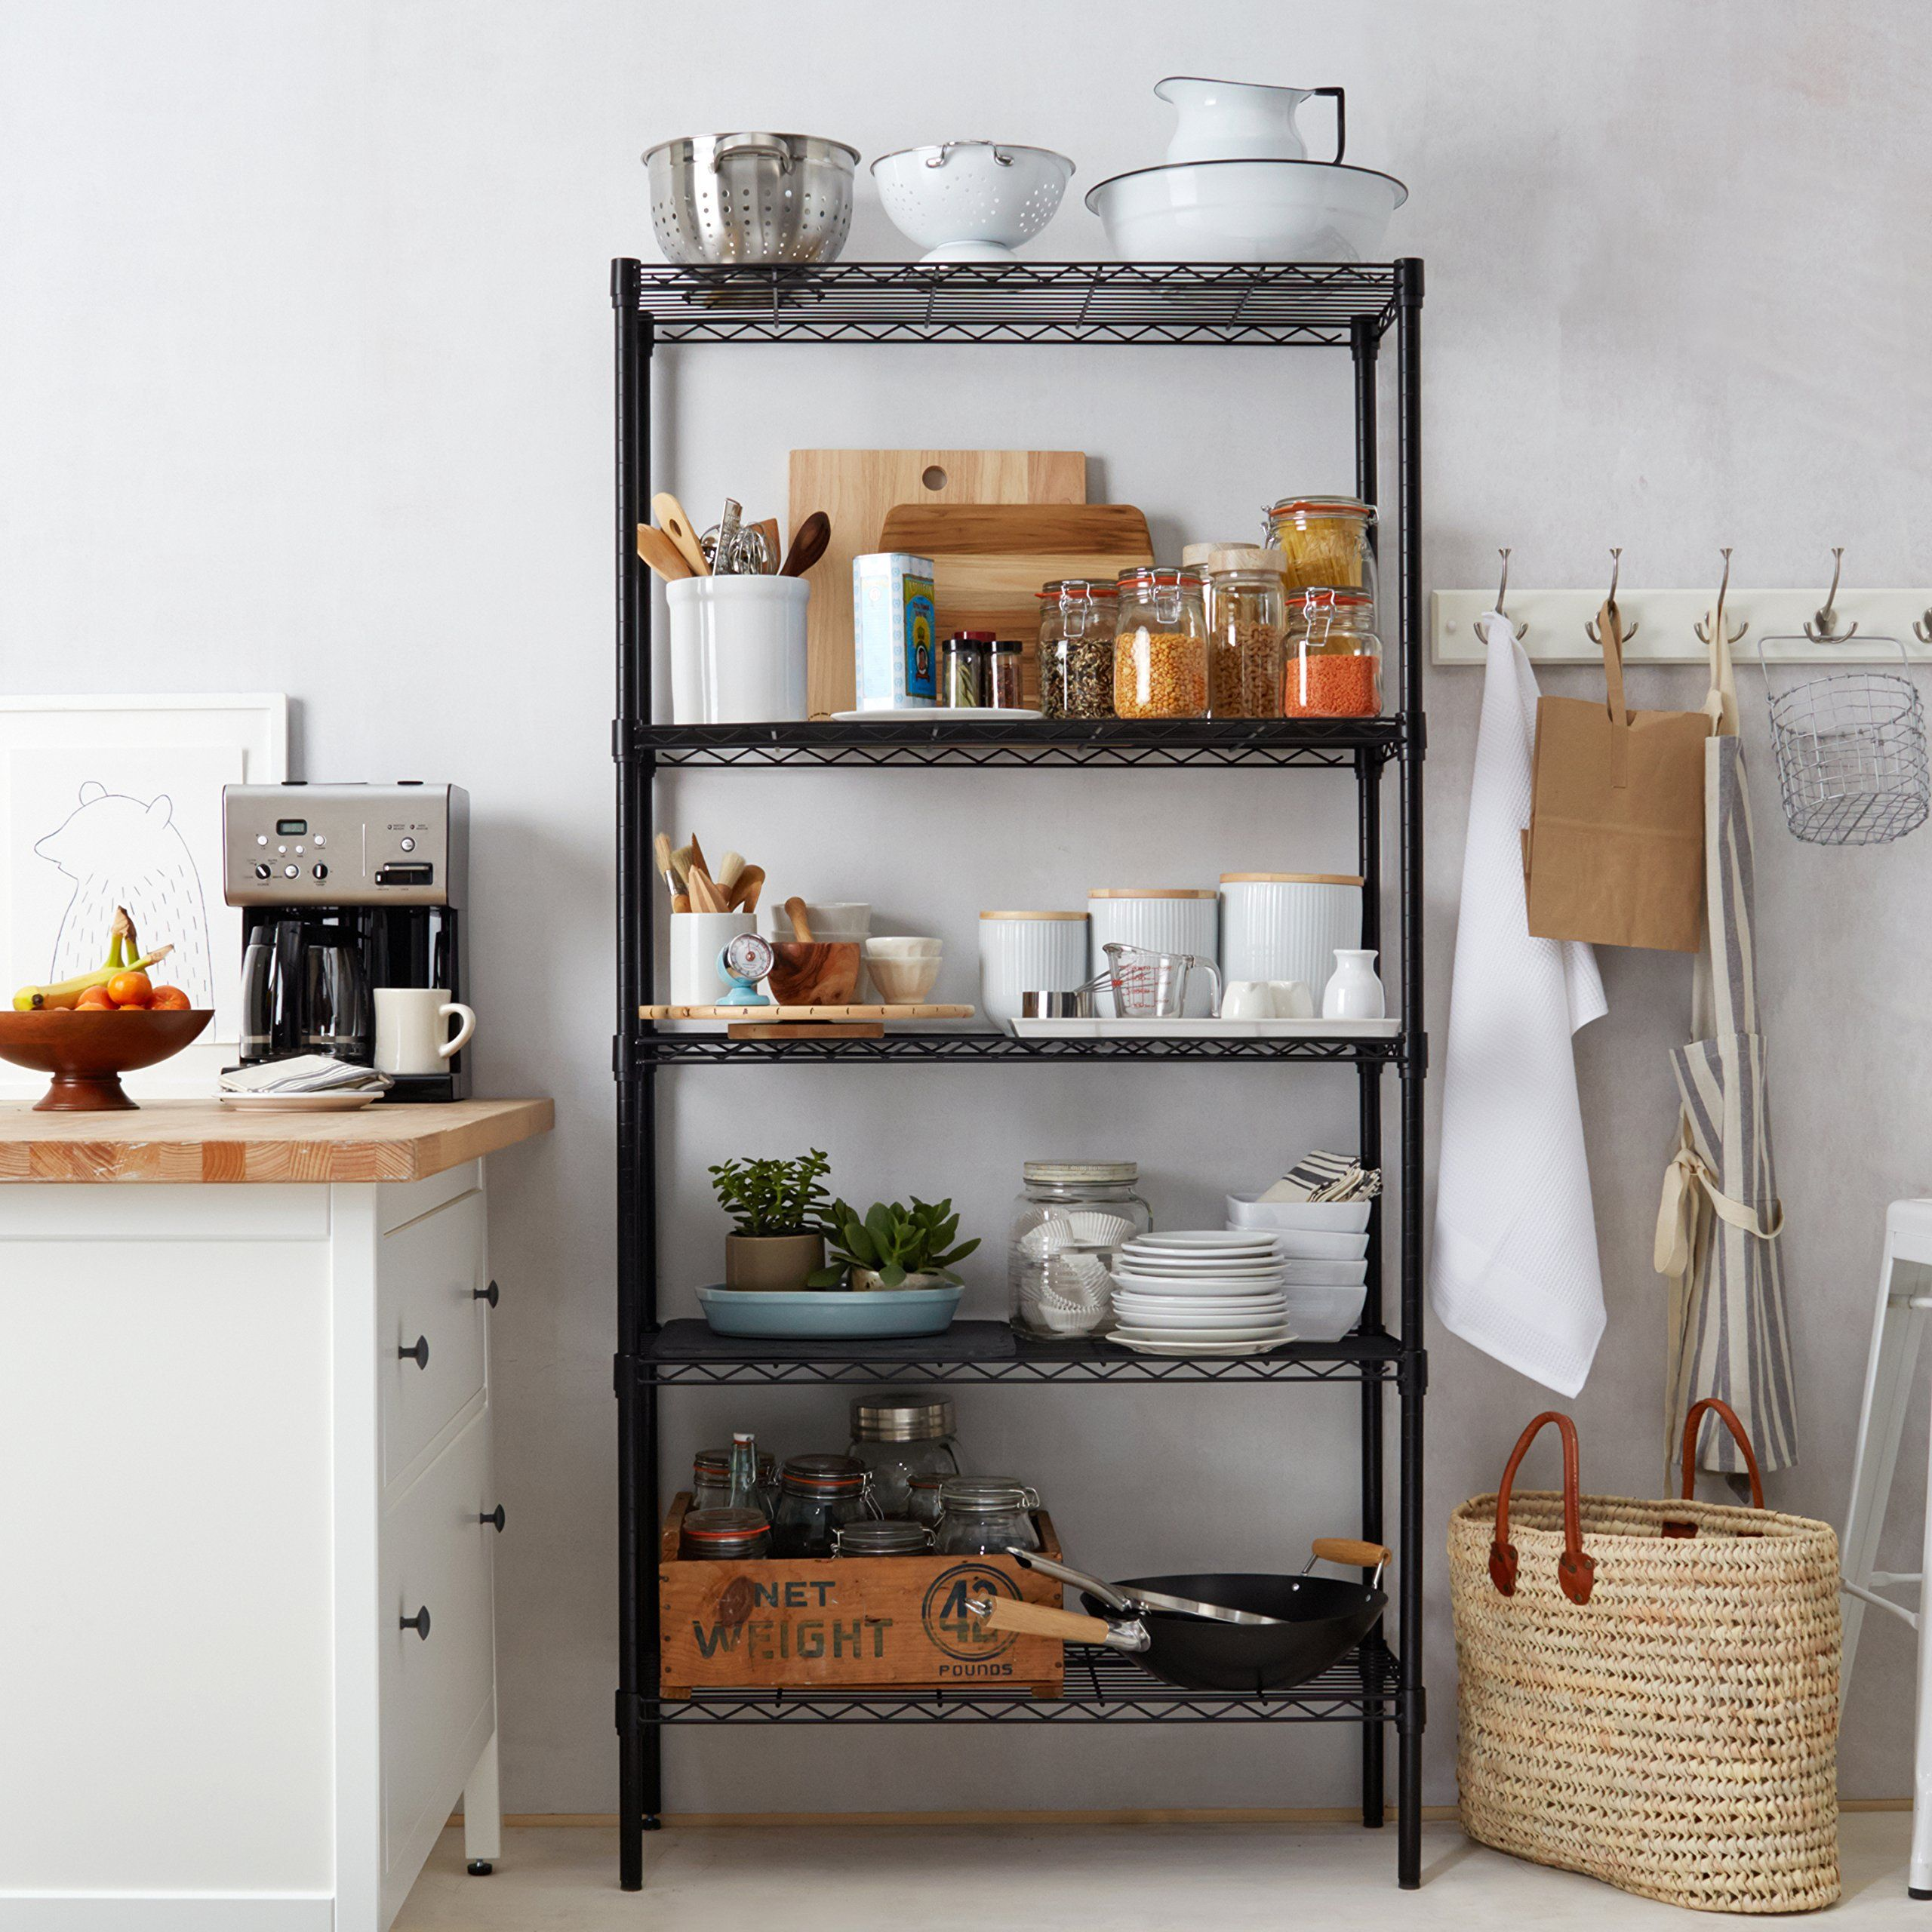 White Kitchen Shelf: Cute Idea To Replace White Shelves In Kitchen: Amazon.com